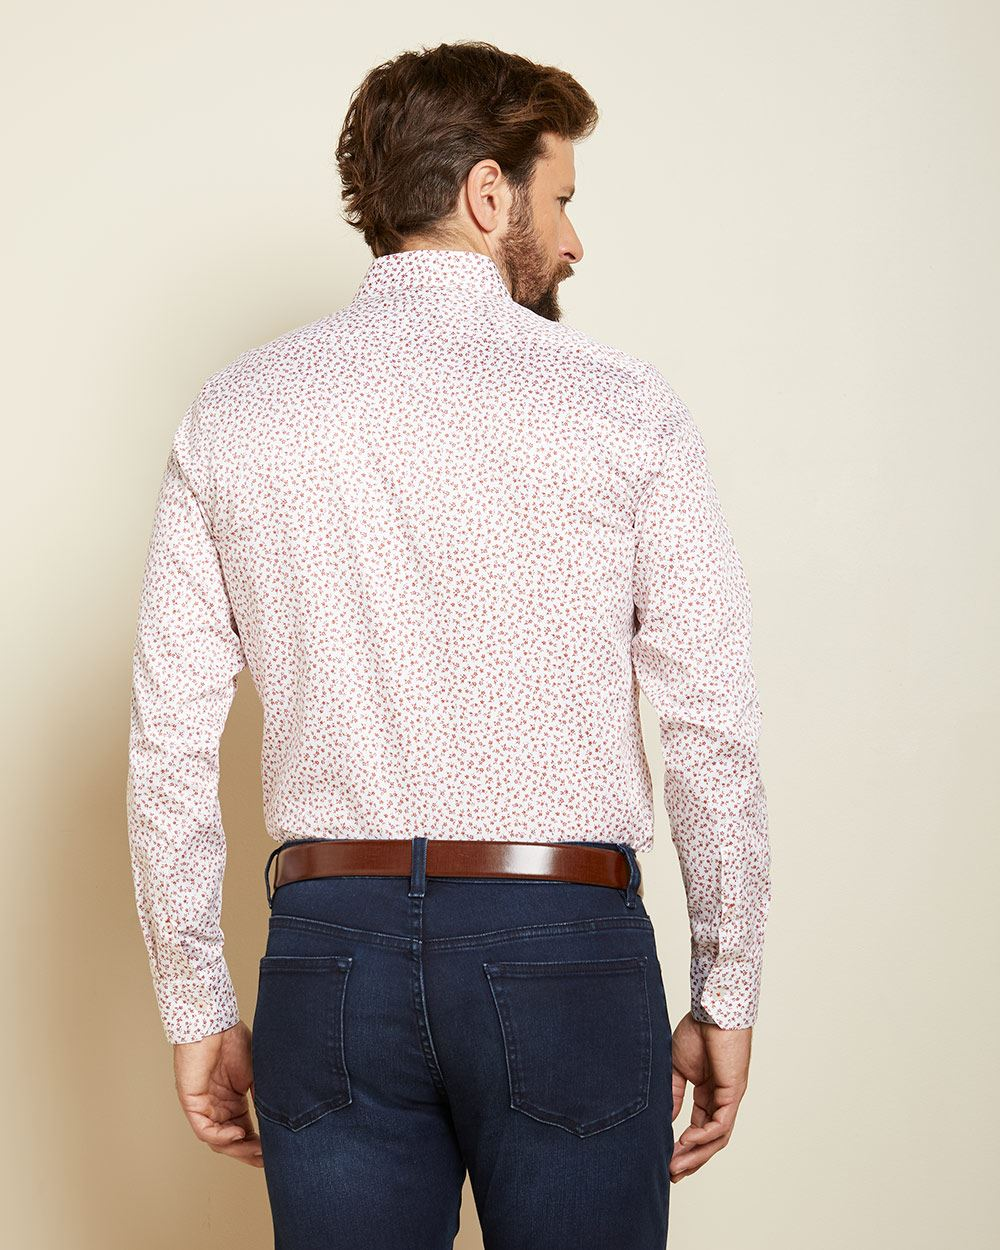 Tailored Fit micro floral dress shirt